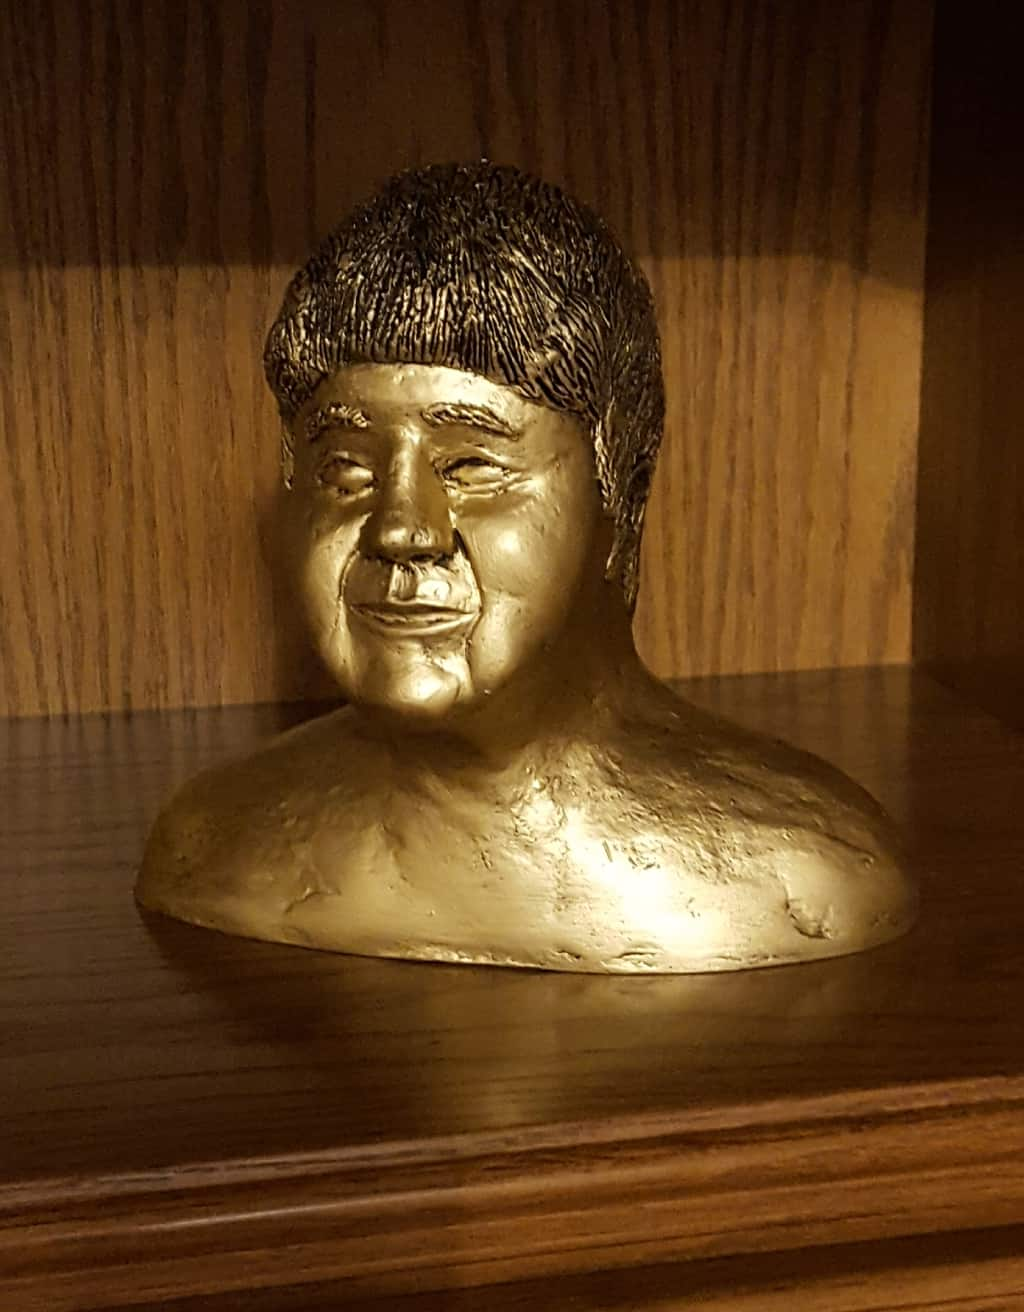 Bust made with paper mache clay